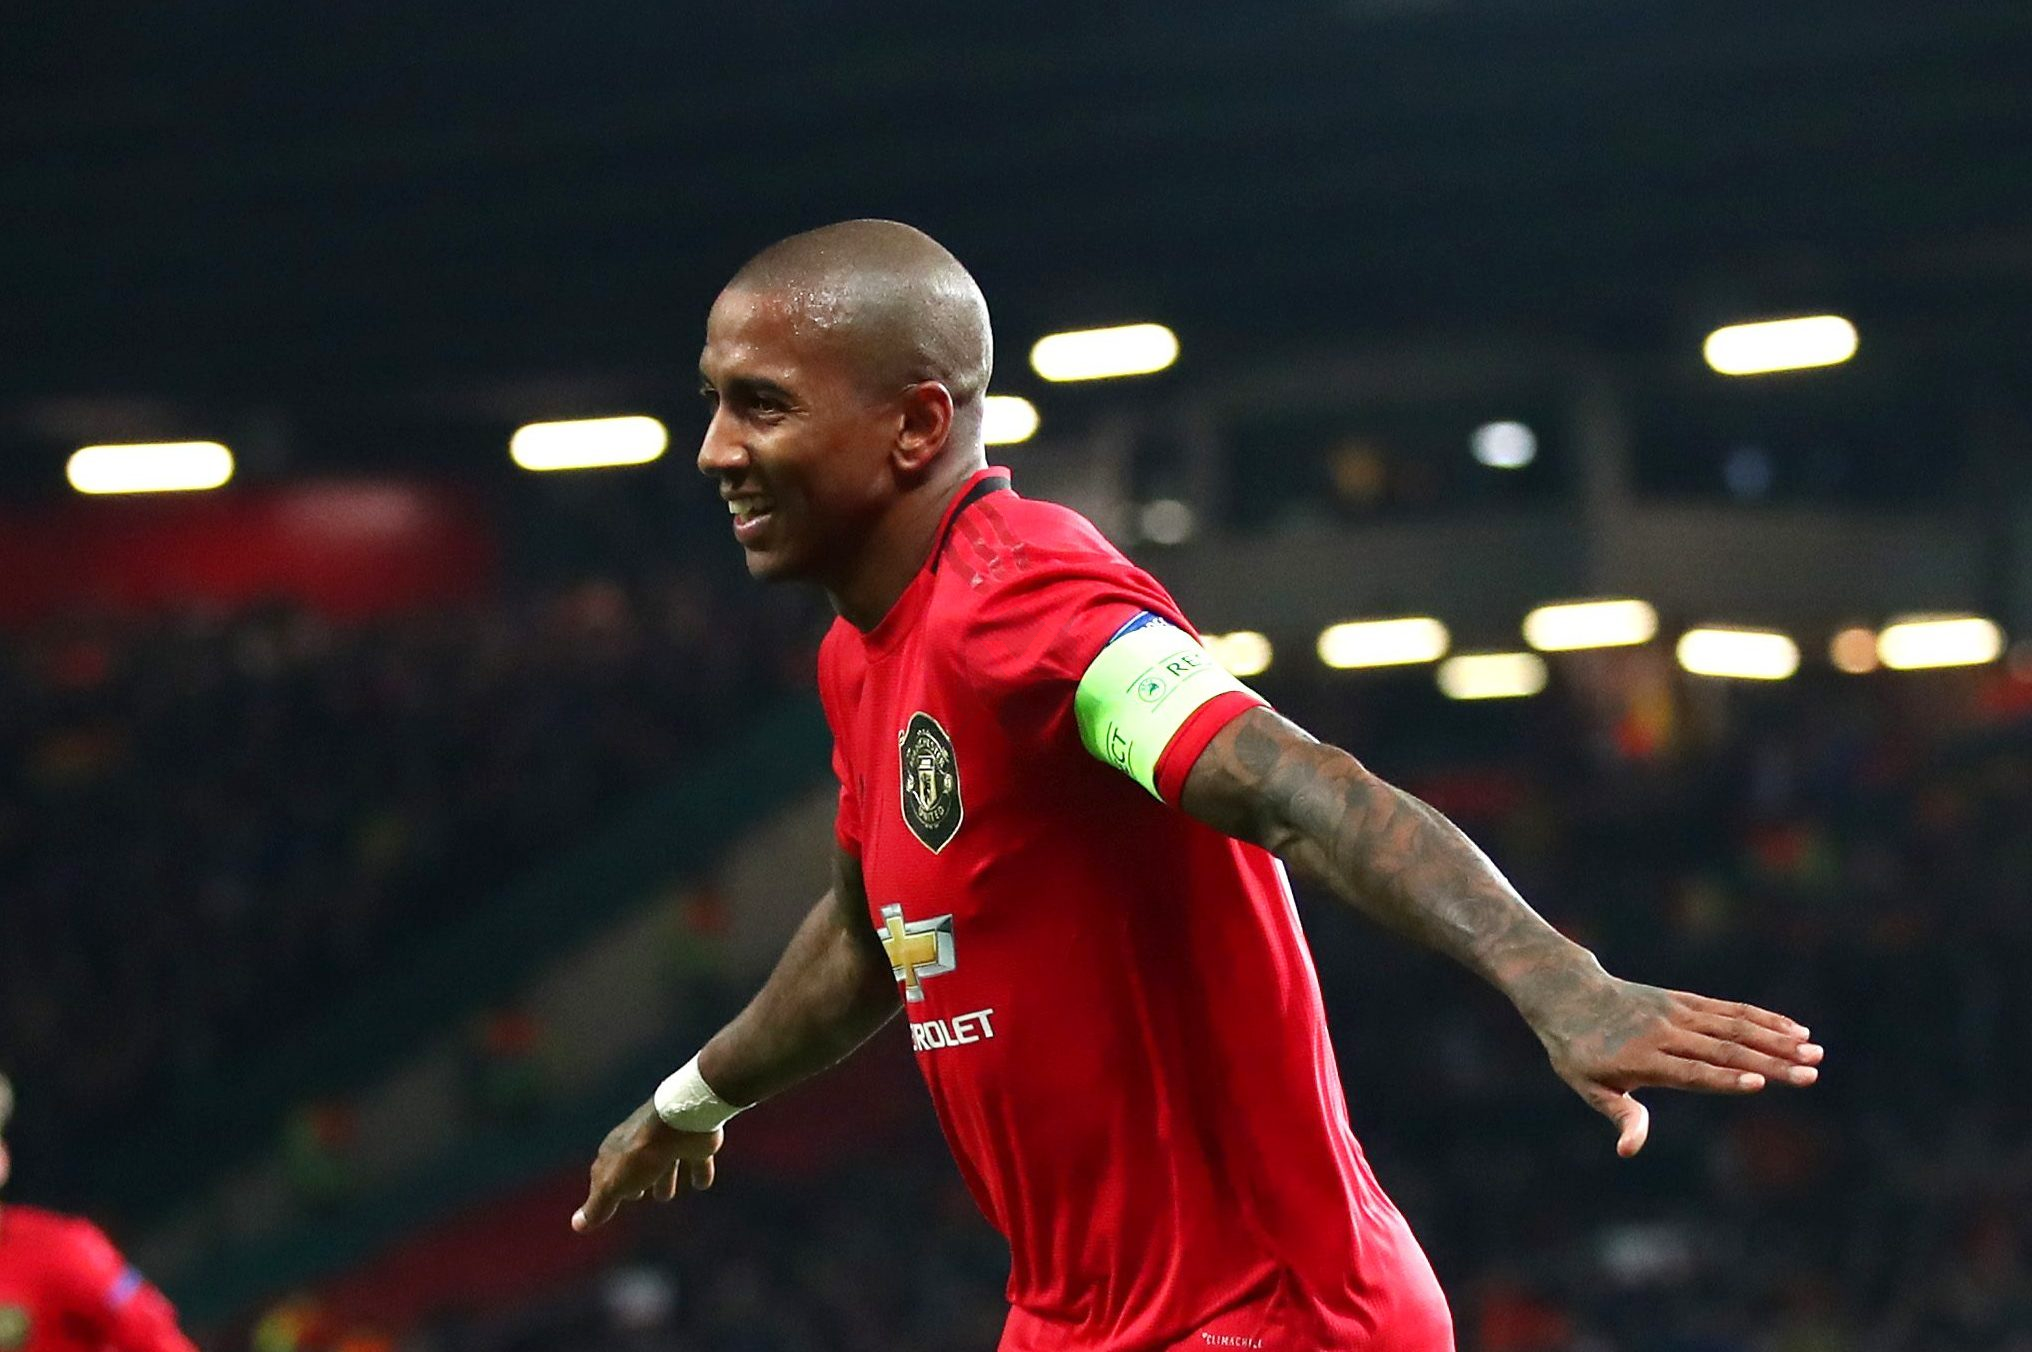 Ashley Young Has Accepted The Proposal Of The Market Inter In 2020 Ashley Young Young Baseball Players